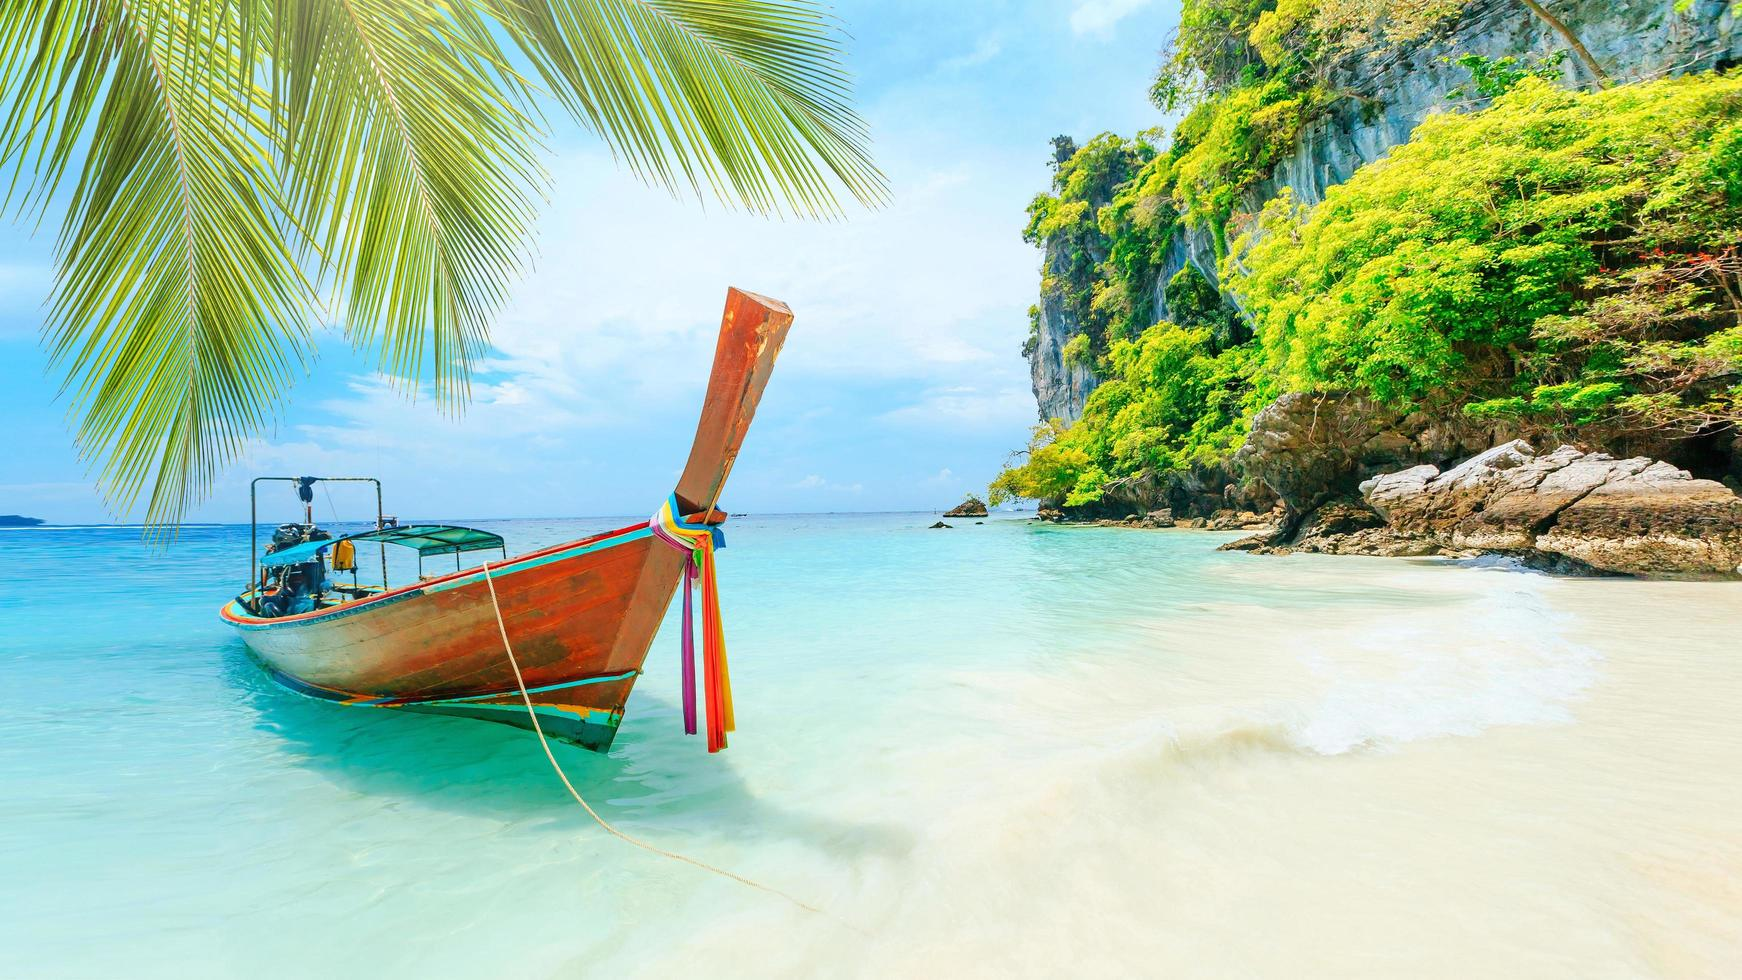 Long-tale boat on white beach in Phuket, Thailand photo